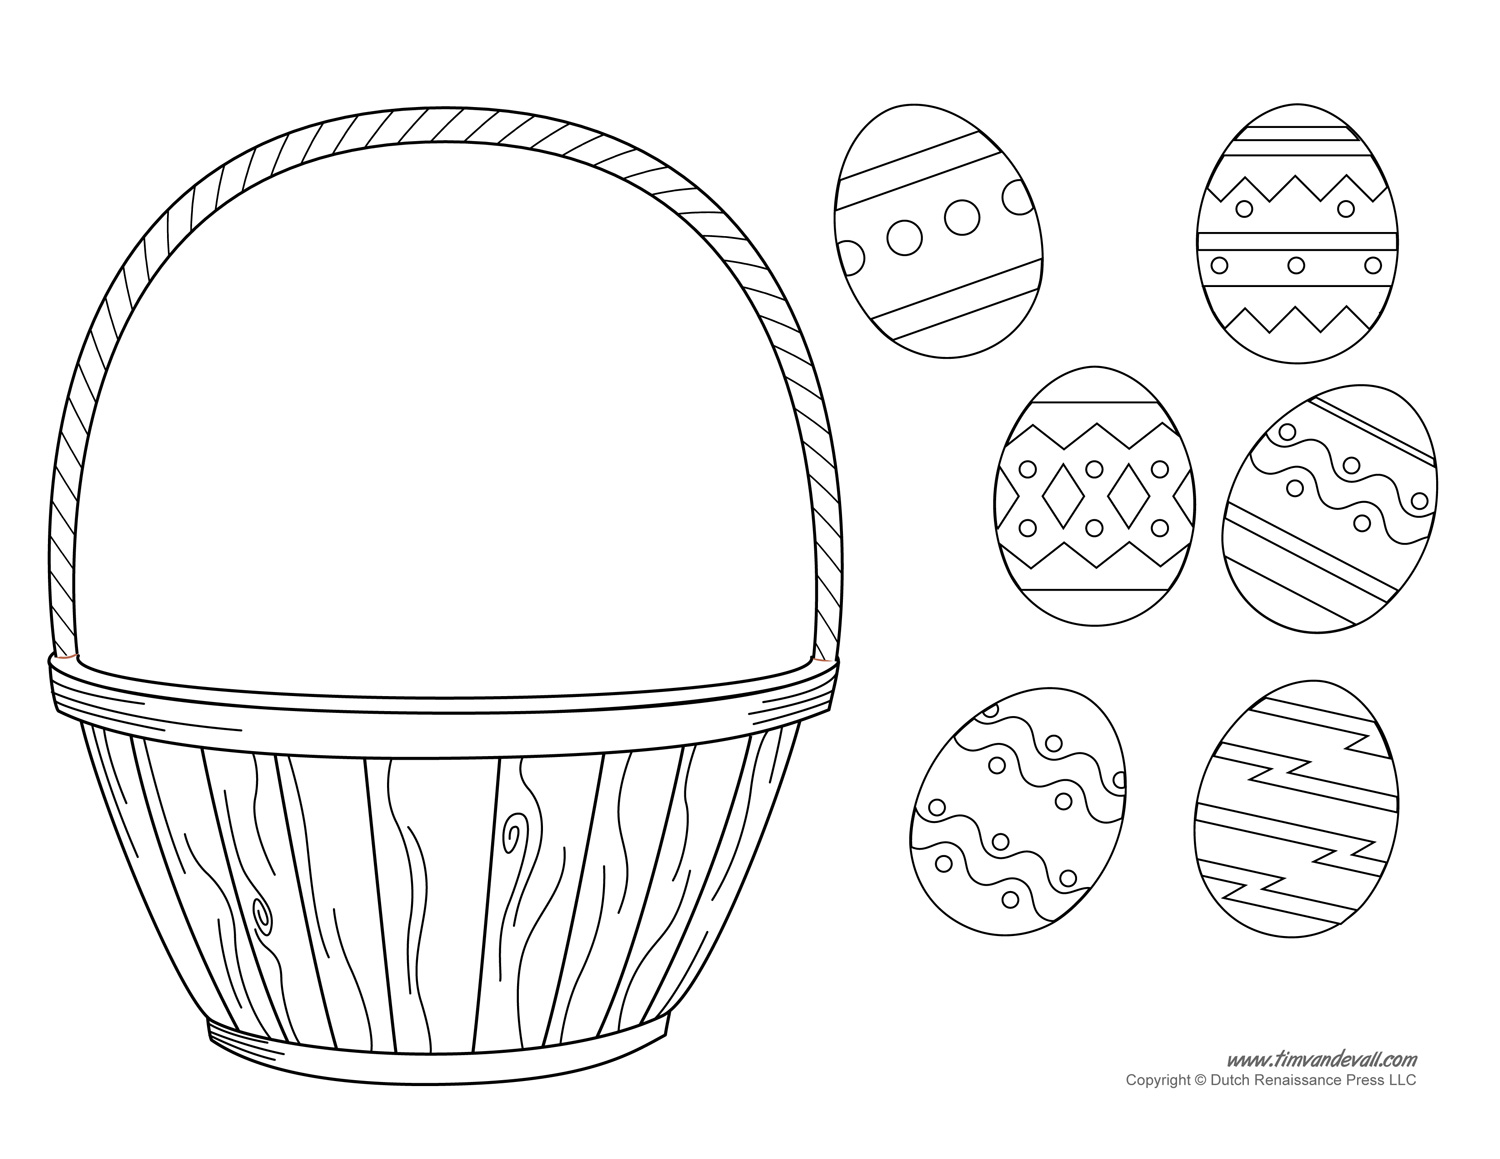 Simple basket template costumepartyrun 13 easter craft ideas and decorations free templates maxwellsz